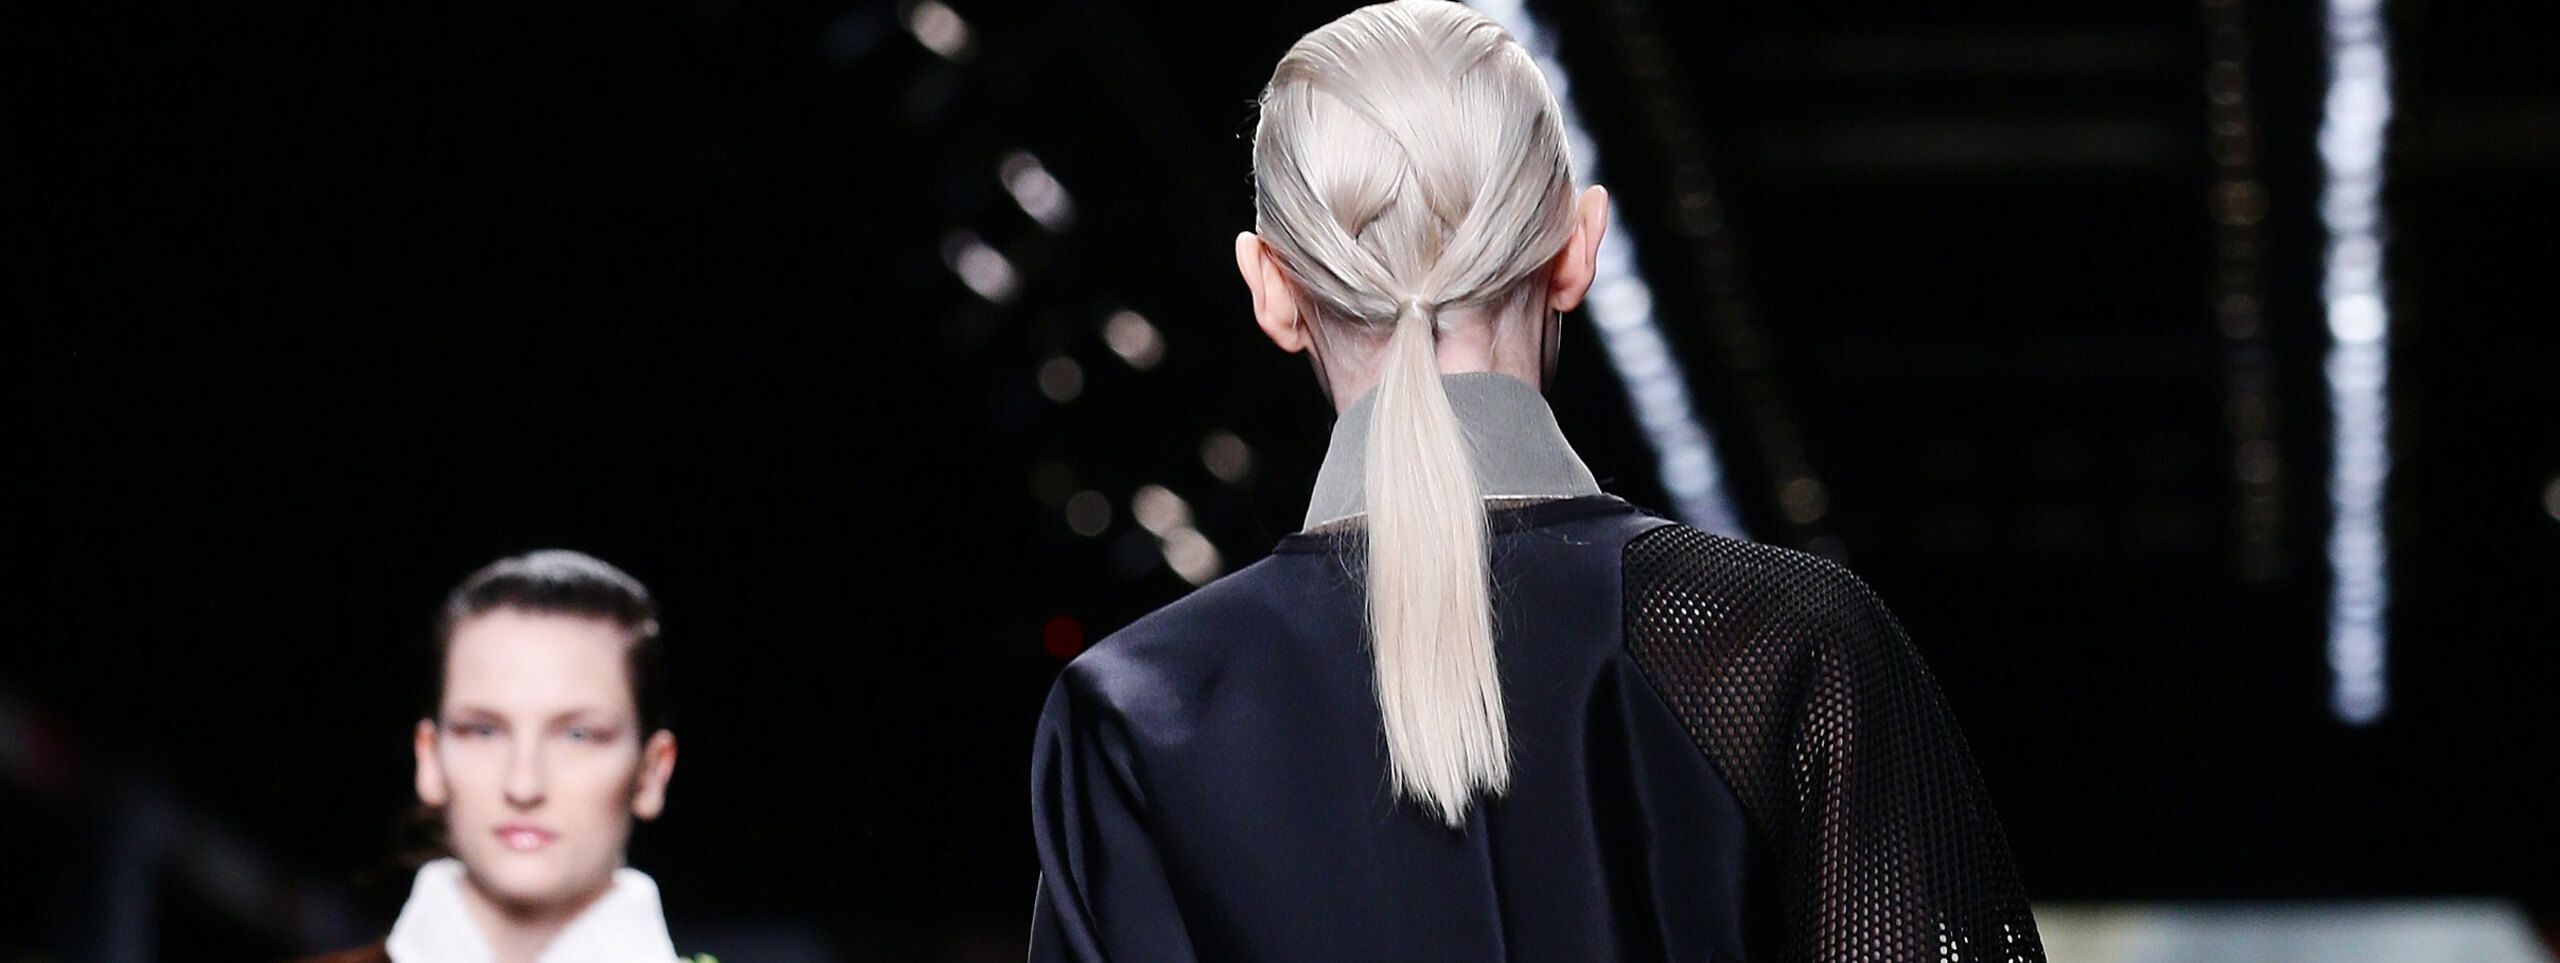 Blonde model with low ponytail hairstyle